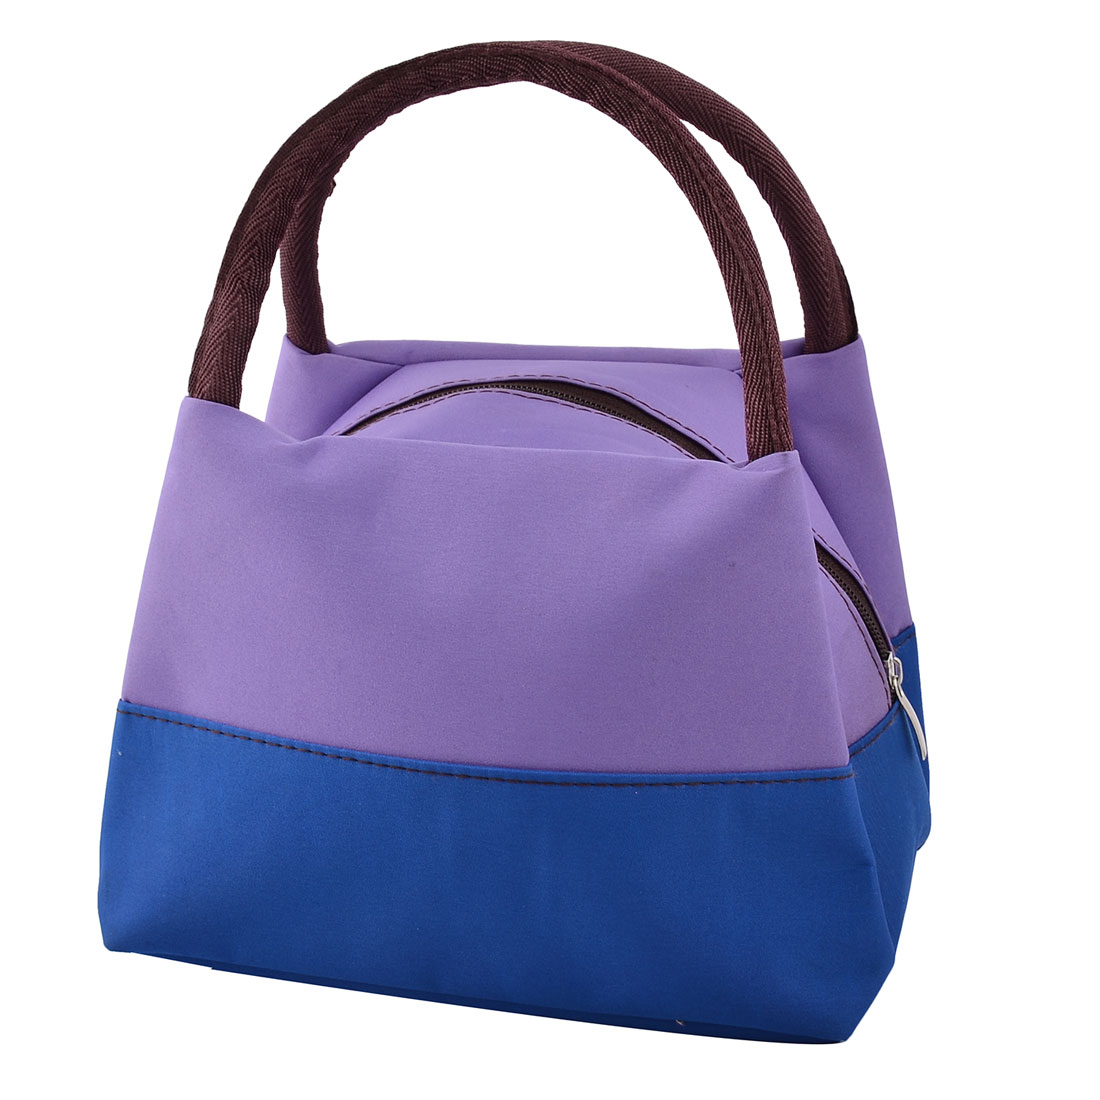 Oxford Cloth Zipper Closure Picnic Lunch Tote Cooler Bag Light Purple Royal Blue